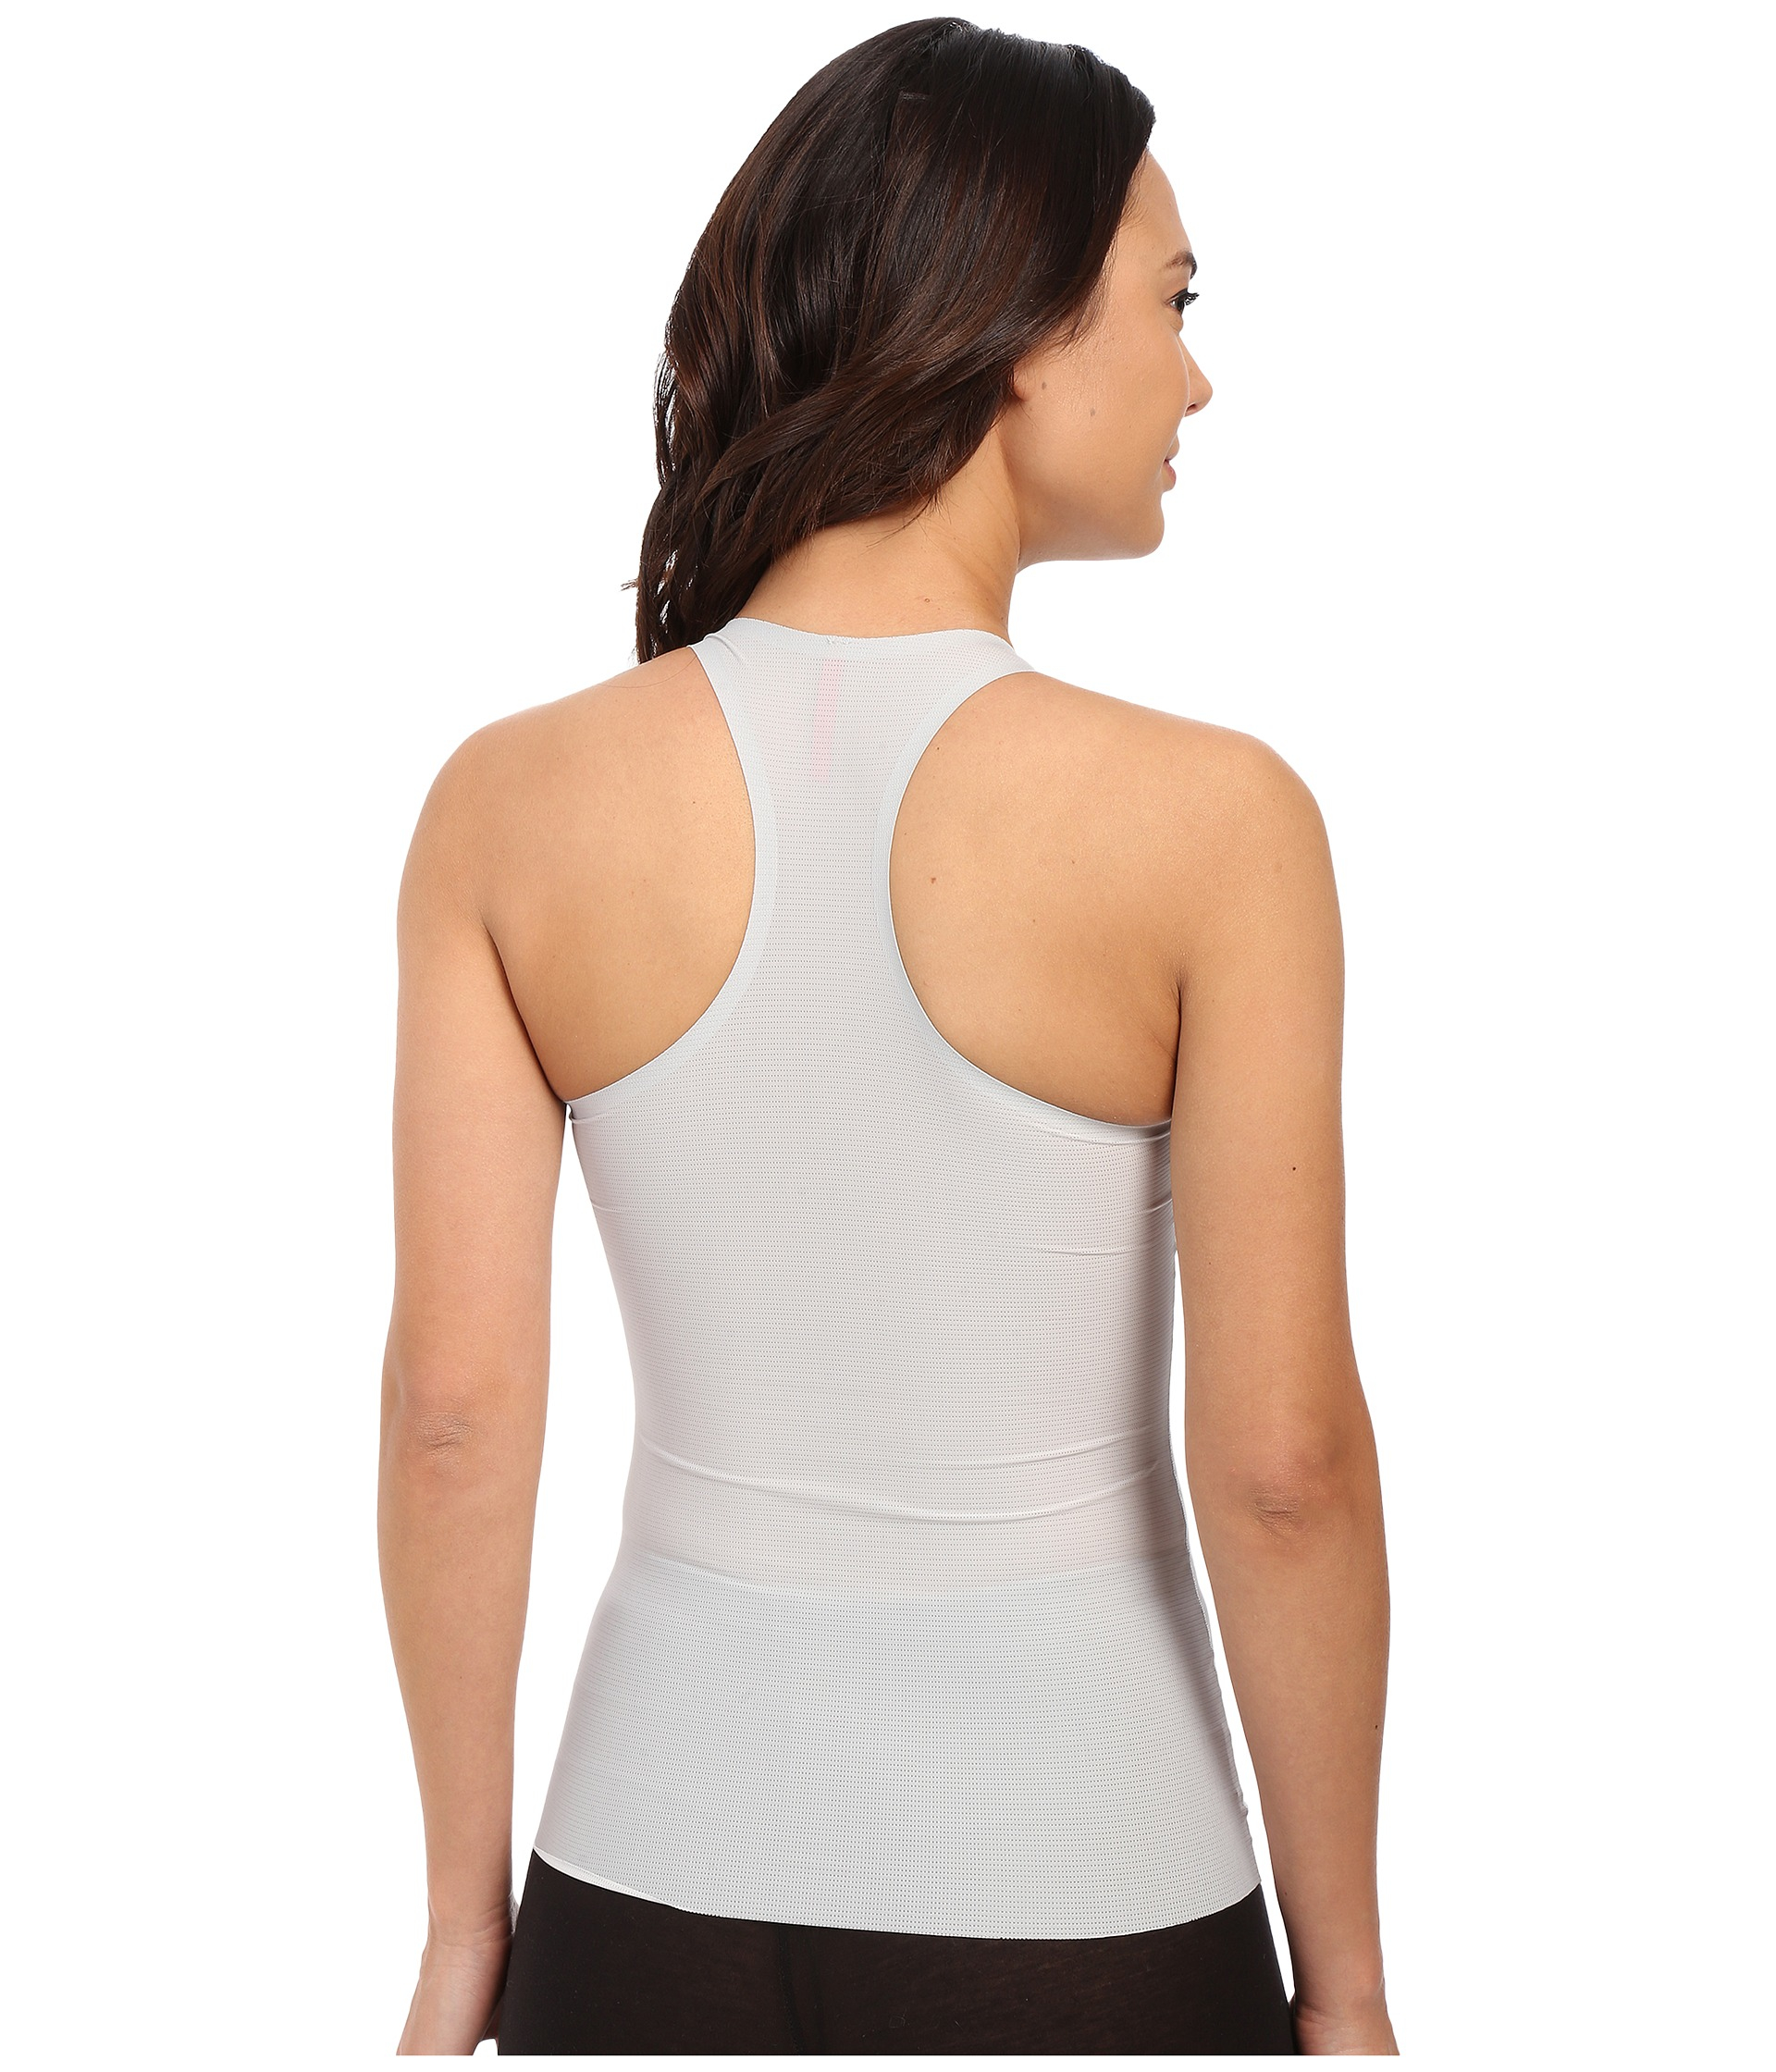 bfca2ce81251b Lyst - Spanx Perforated Racerback Tank Top in Gray